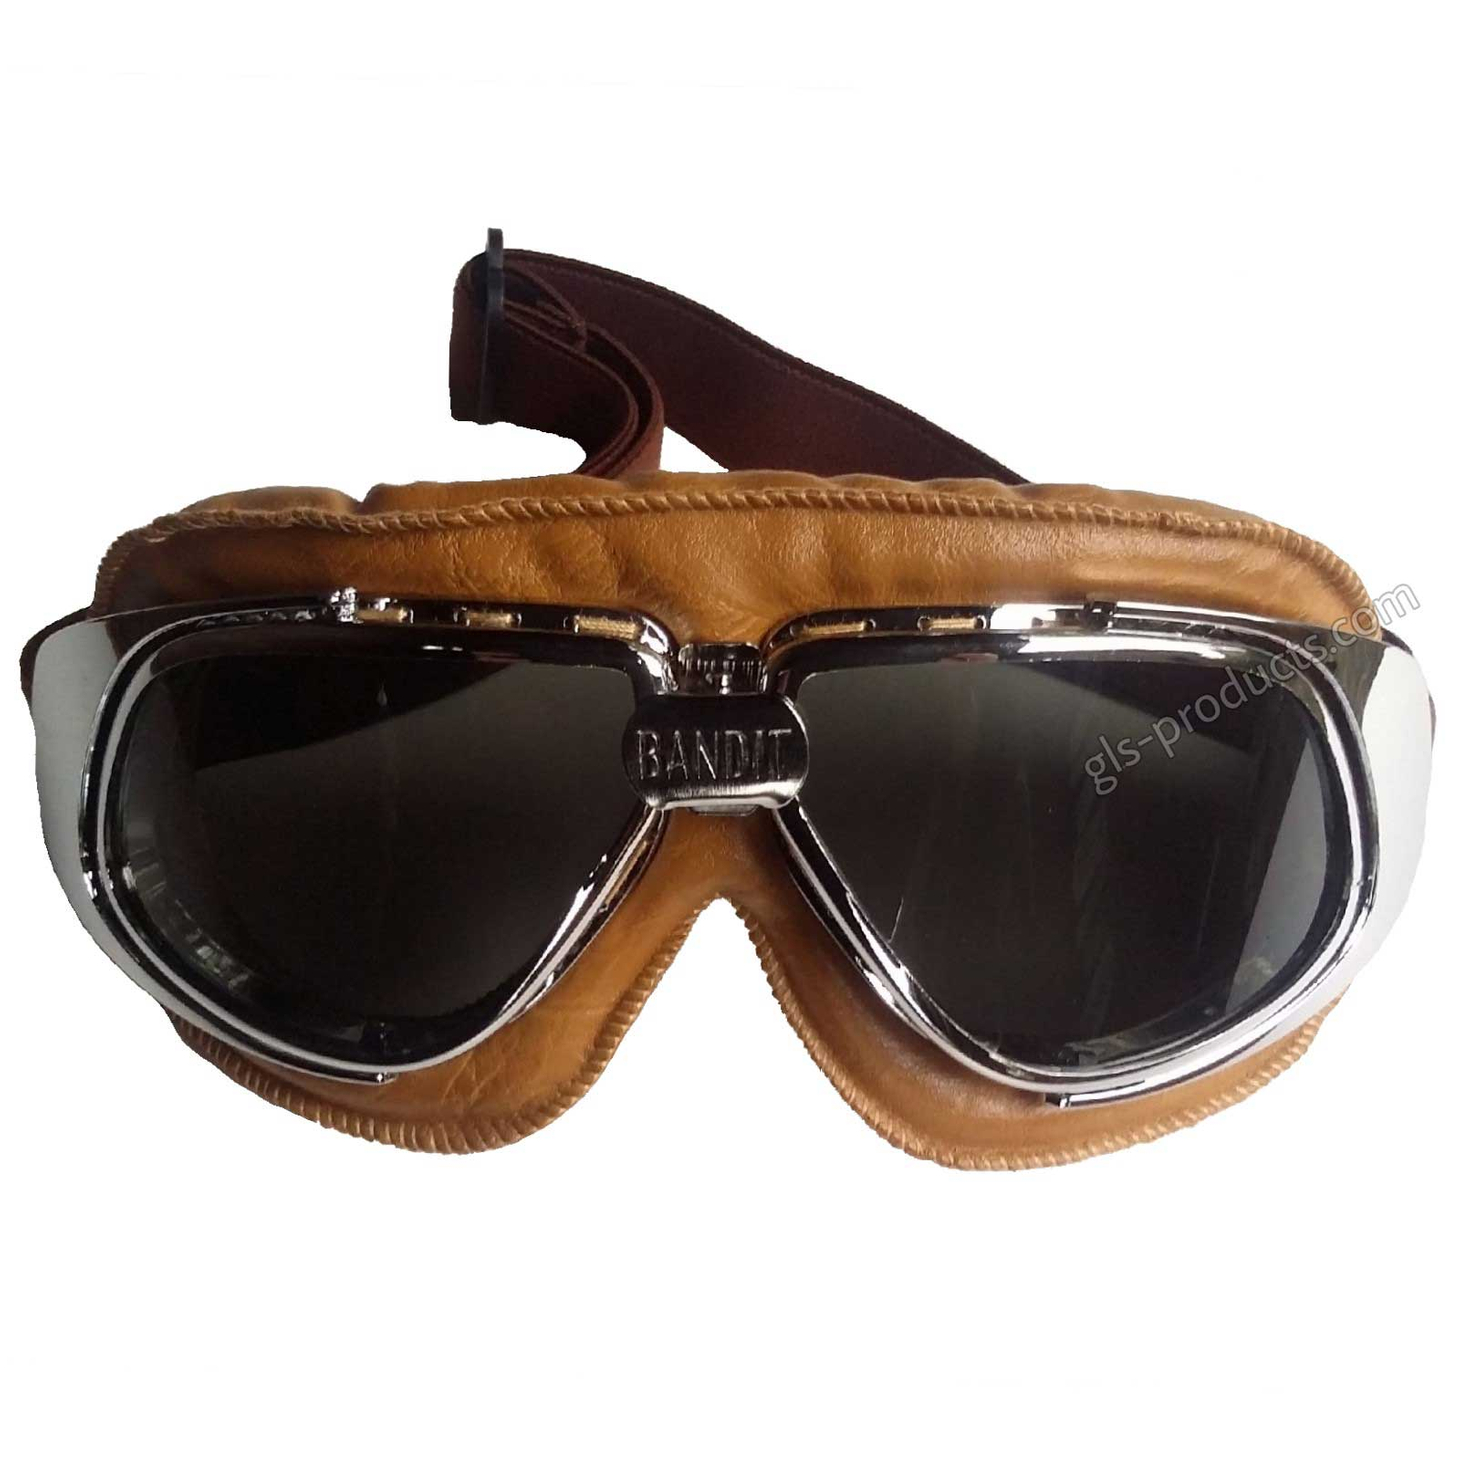 Bandit Motorcycle Glasses Goggles brown – Picture 3